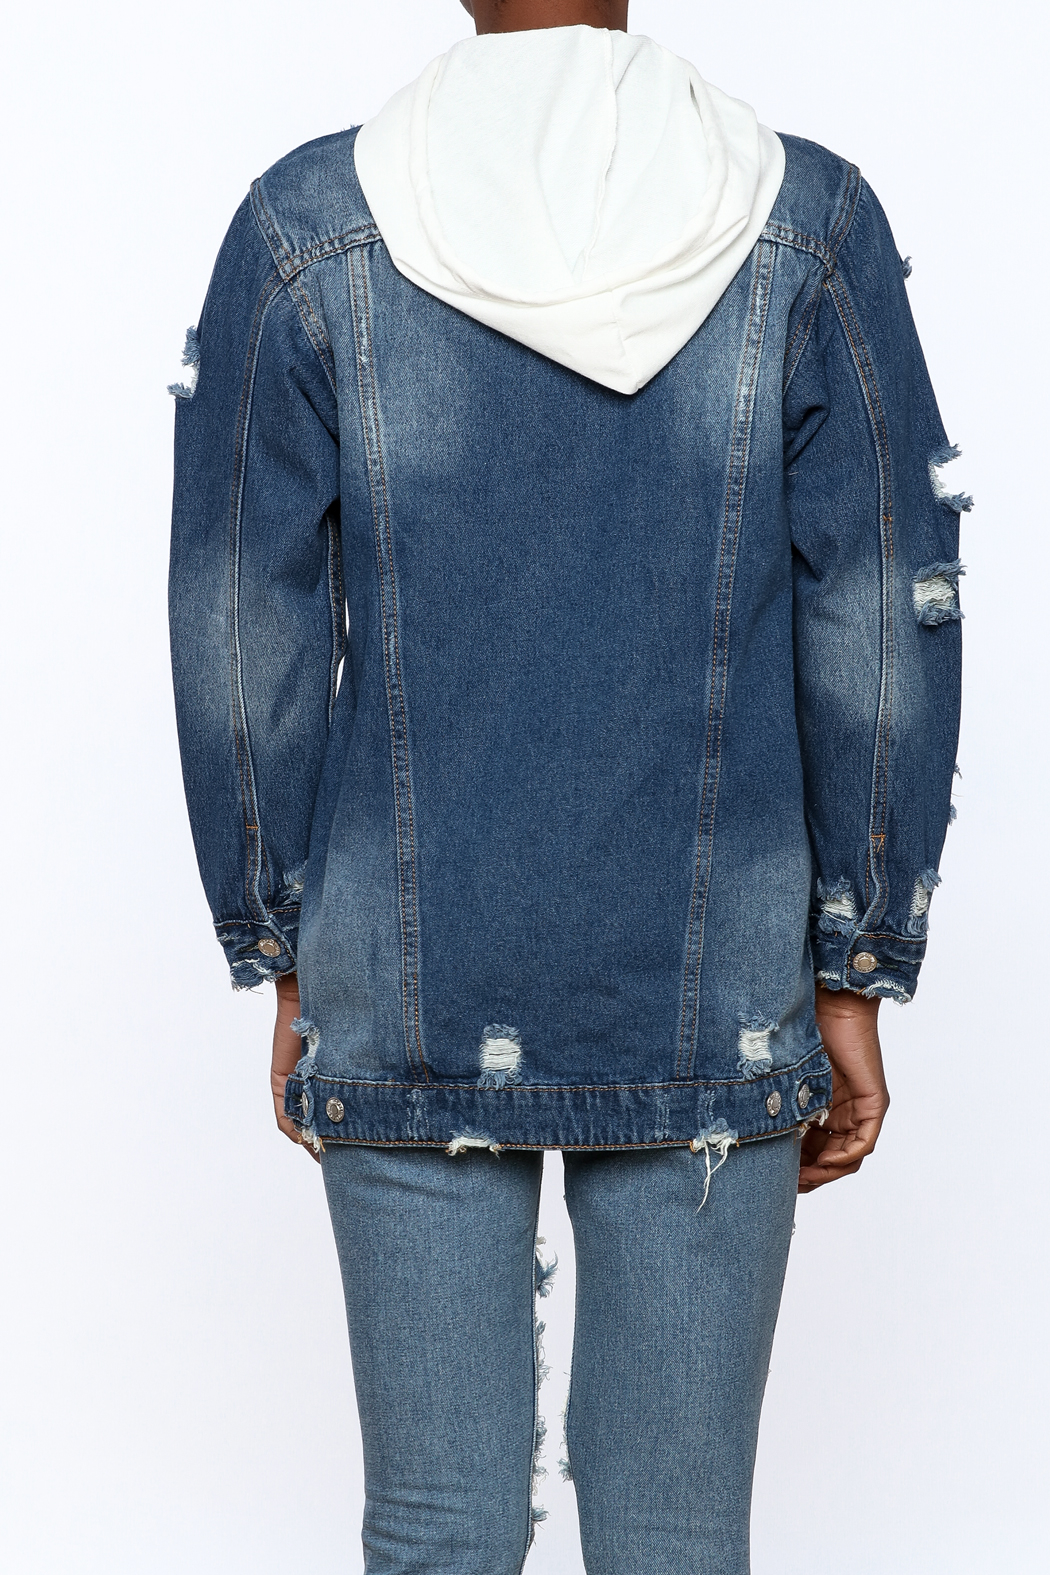 Hot & Delicious Dark Wash Denim Jacket from New York City by Jupe ...